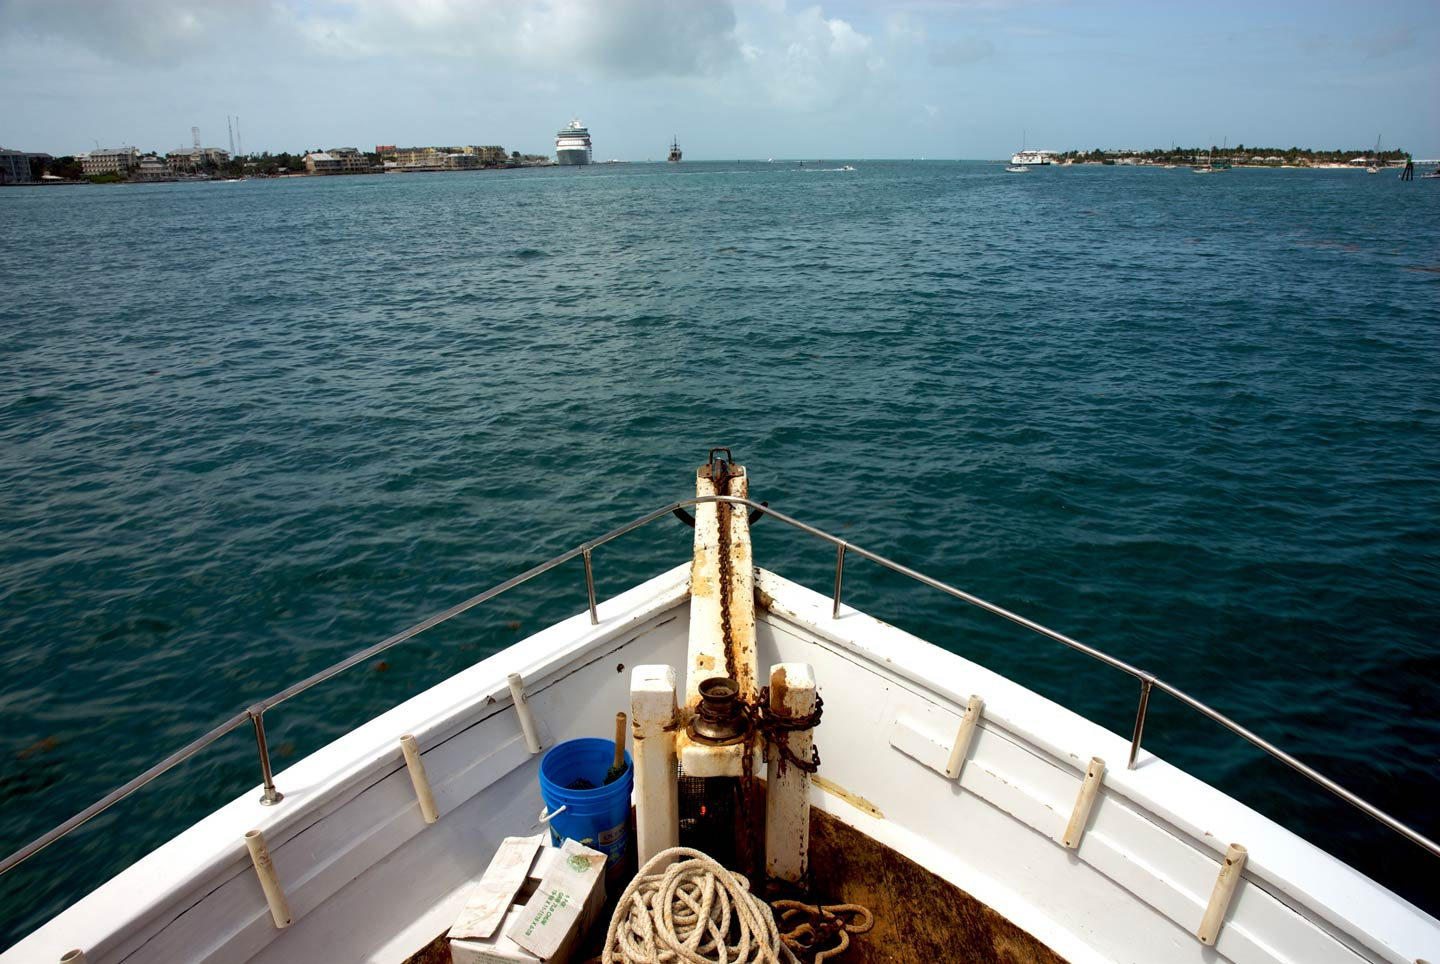 A view from a charter fishing boat on the water